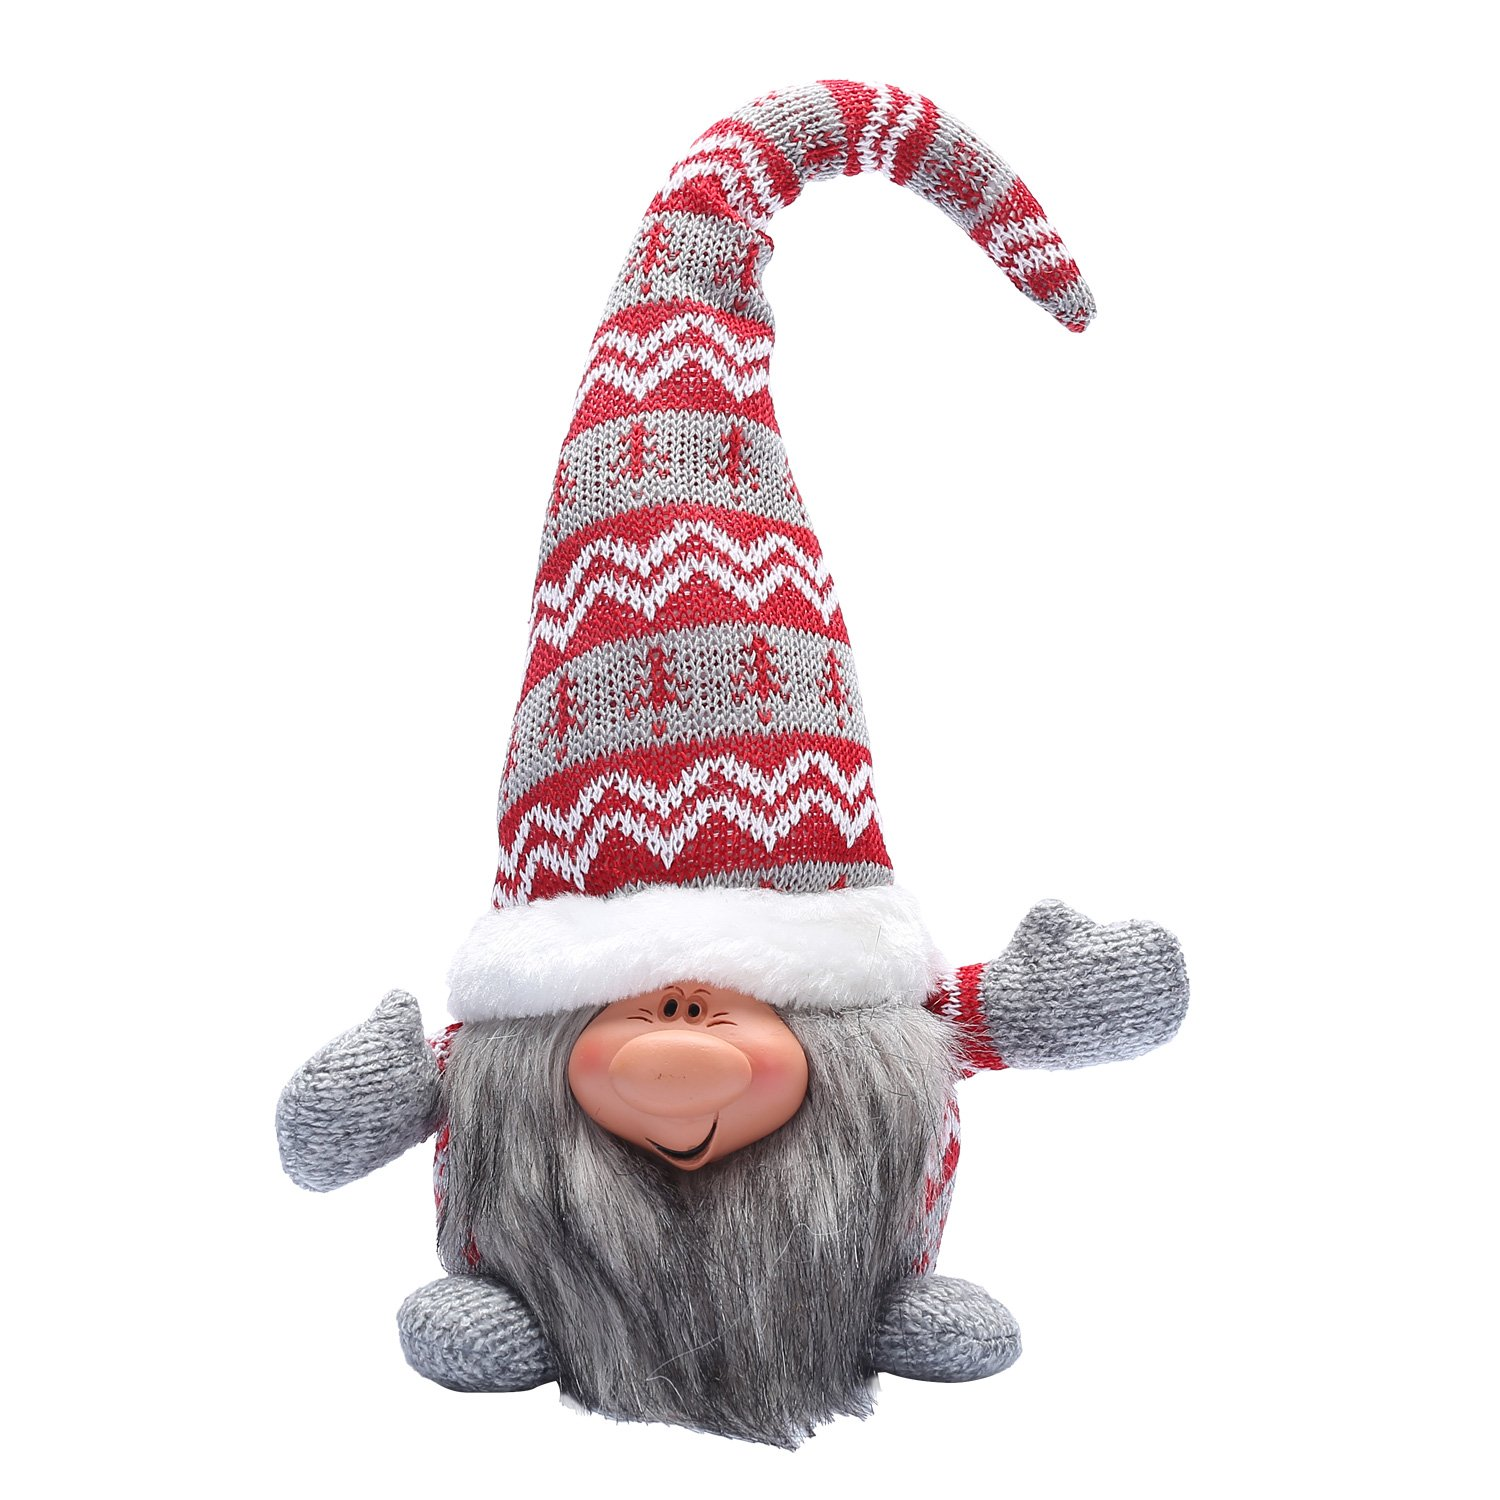 16 Inches Handmade Christmas Gnome Decoration Santa Tomte Holiday Gifts Swedish Face Figurines (Red)